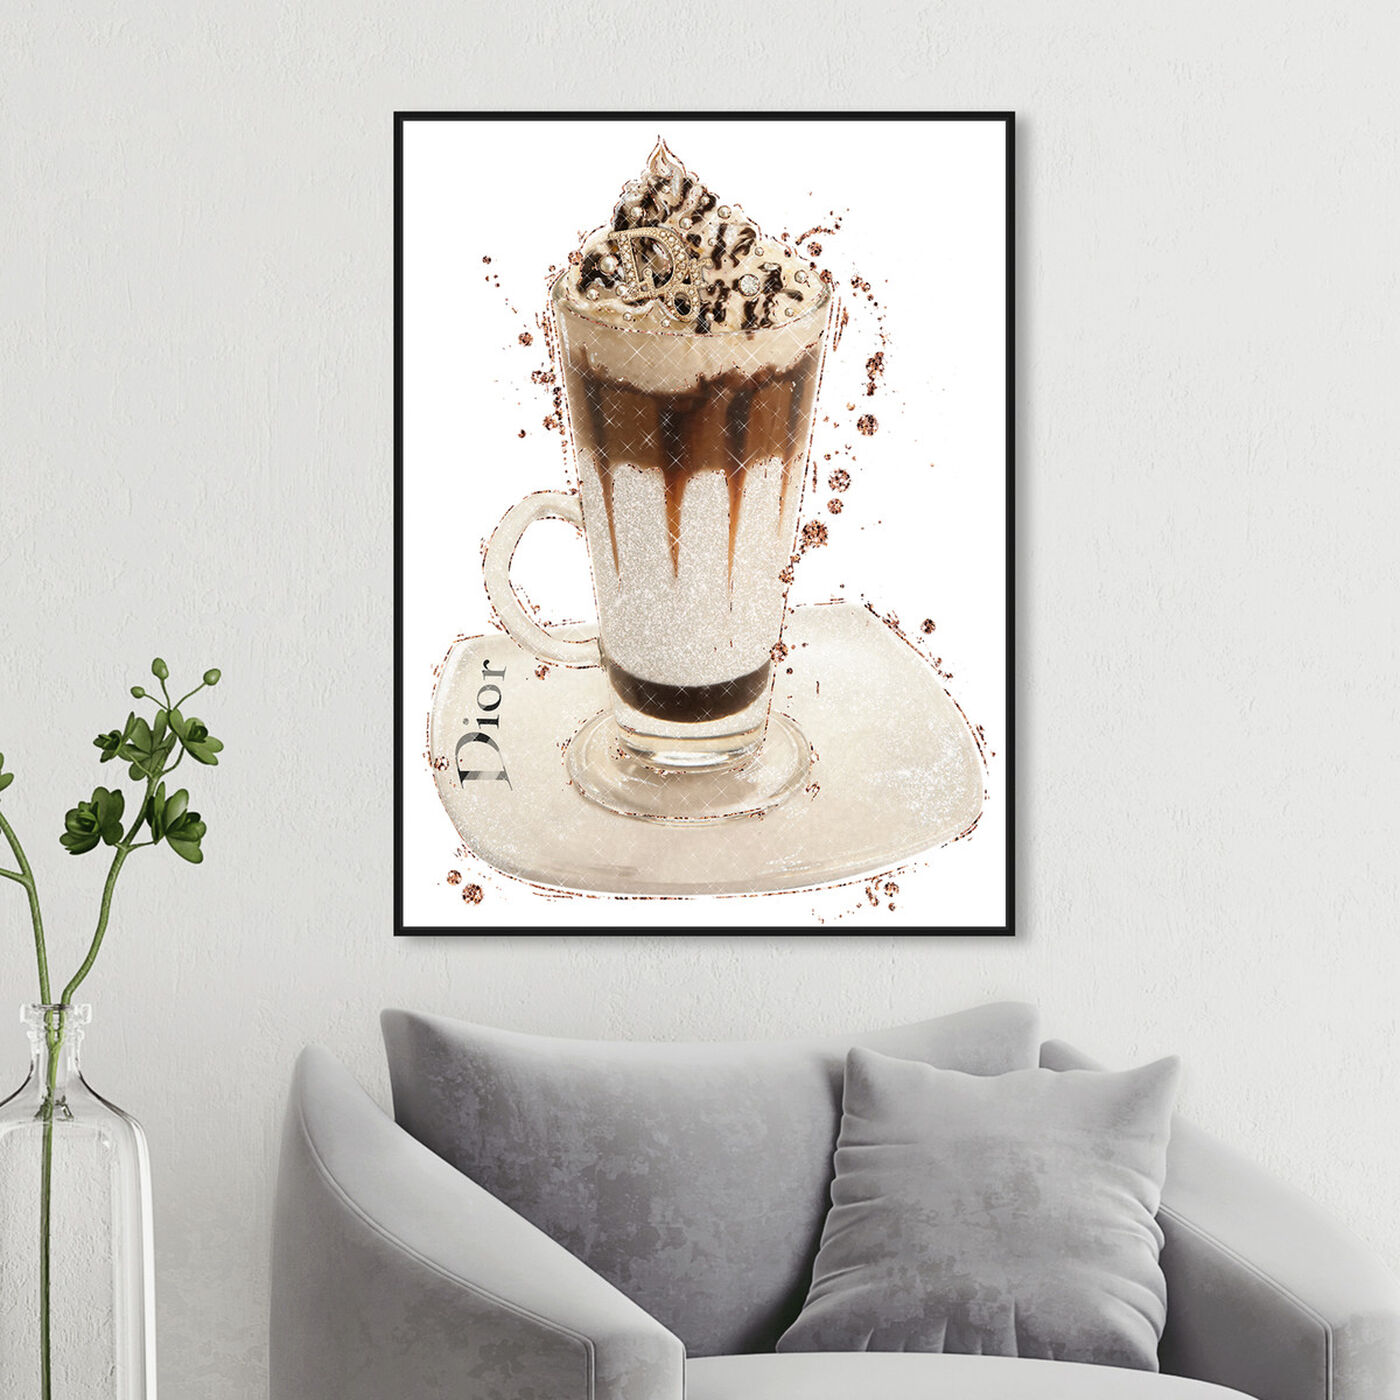 Hanging view of Vanilla Creamy Frappe featuring drinks and spirits and coffee art.